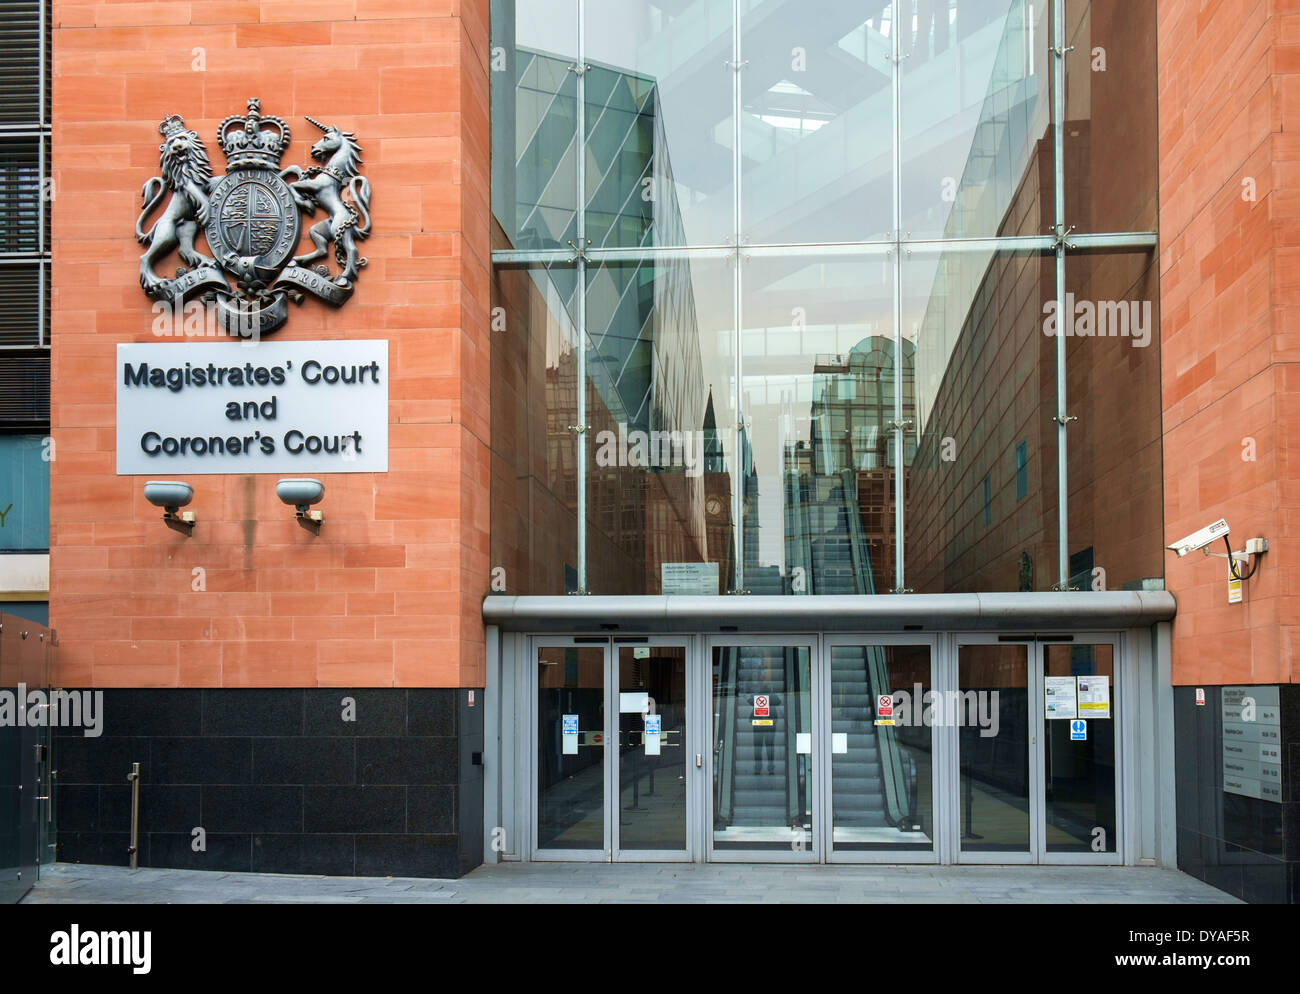 Magistrates' Court and Coroner's Court, Crown Square, Manchester, England, UK - Stock Image